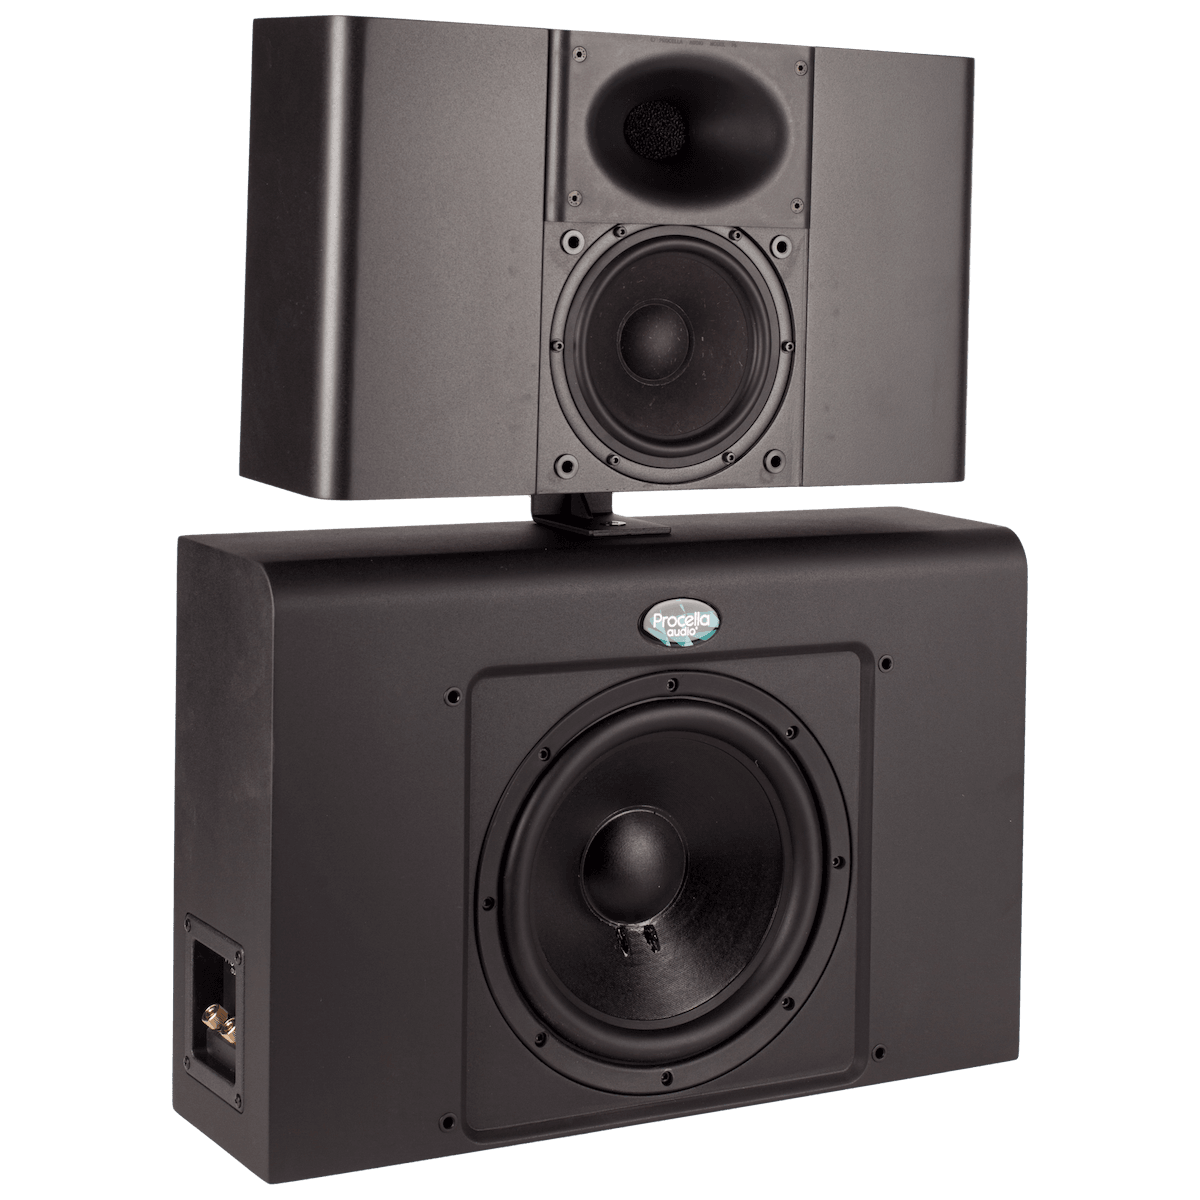 Procella P610 side view without cover 1200×1200-2